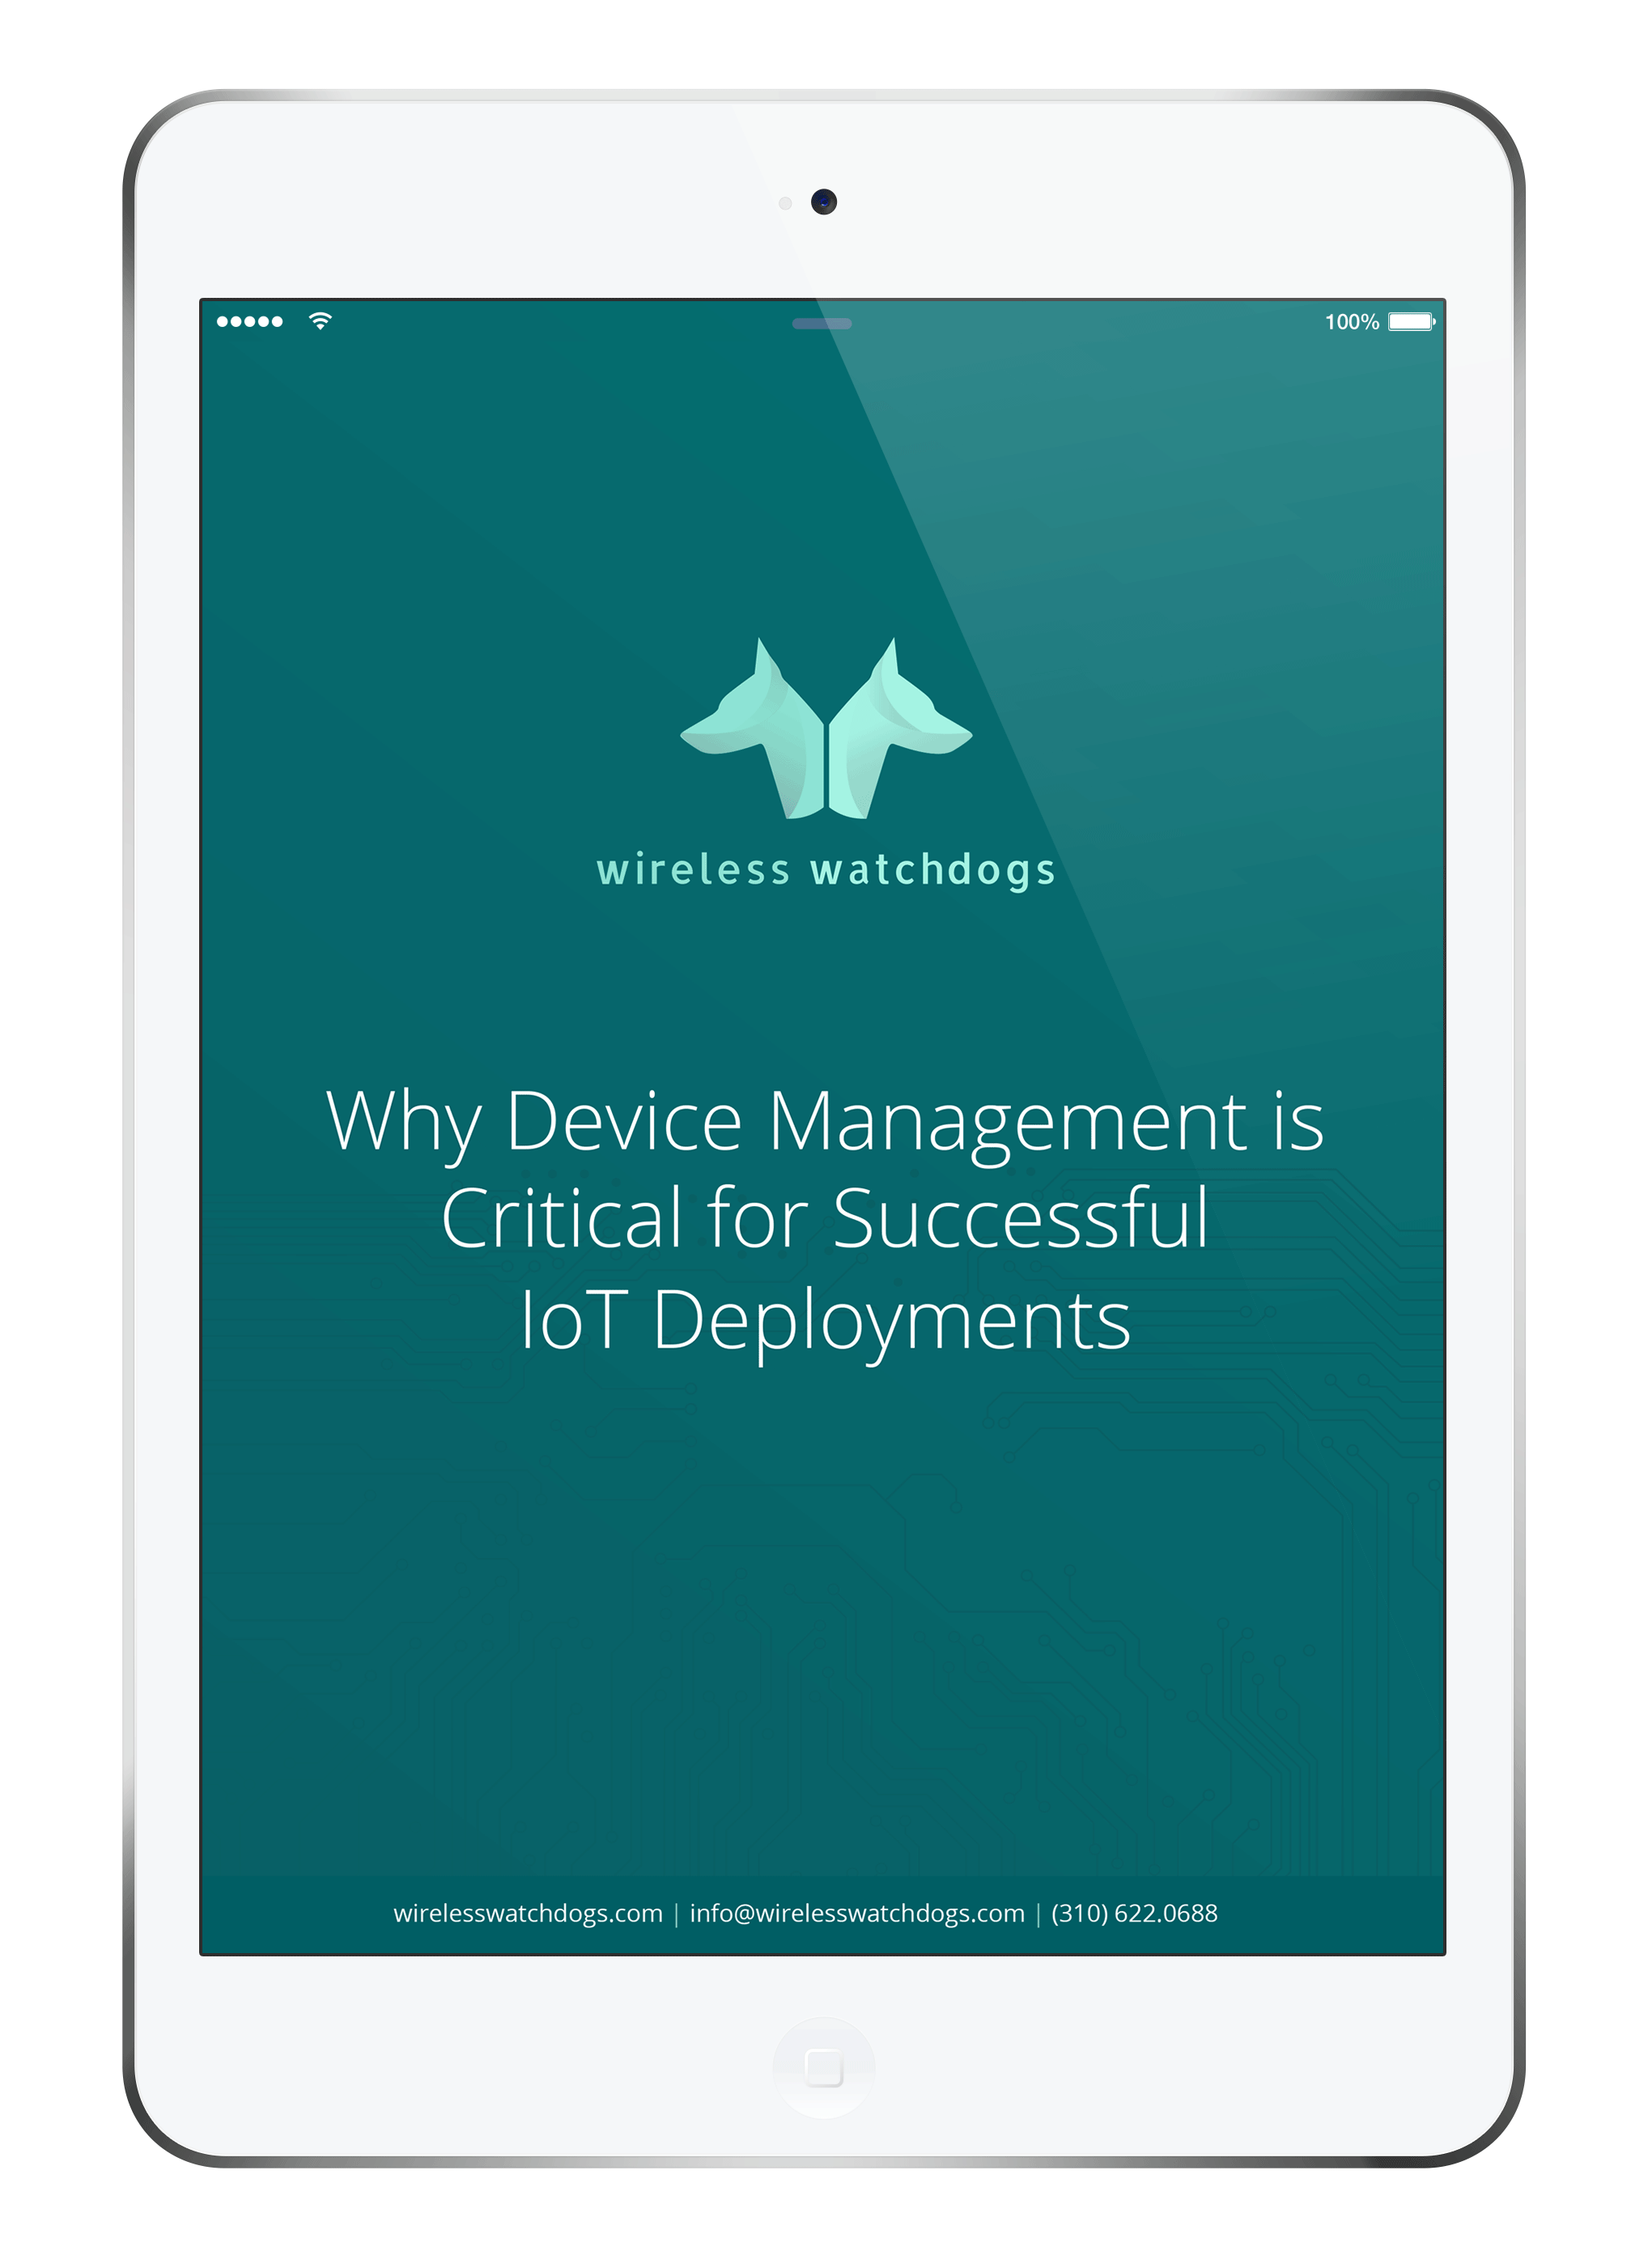 White Paper: Why Device Management Is Critical for Successful IoT Deployments